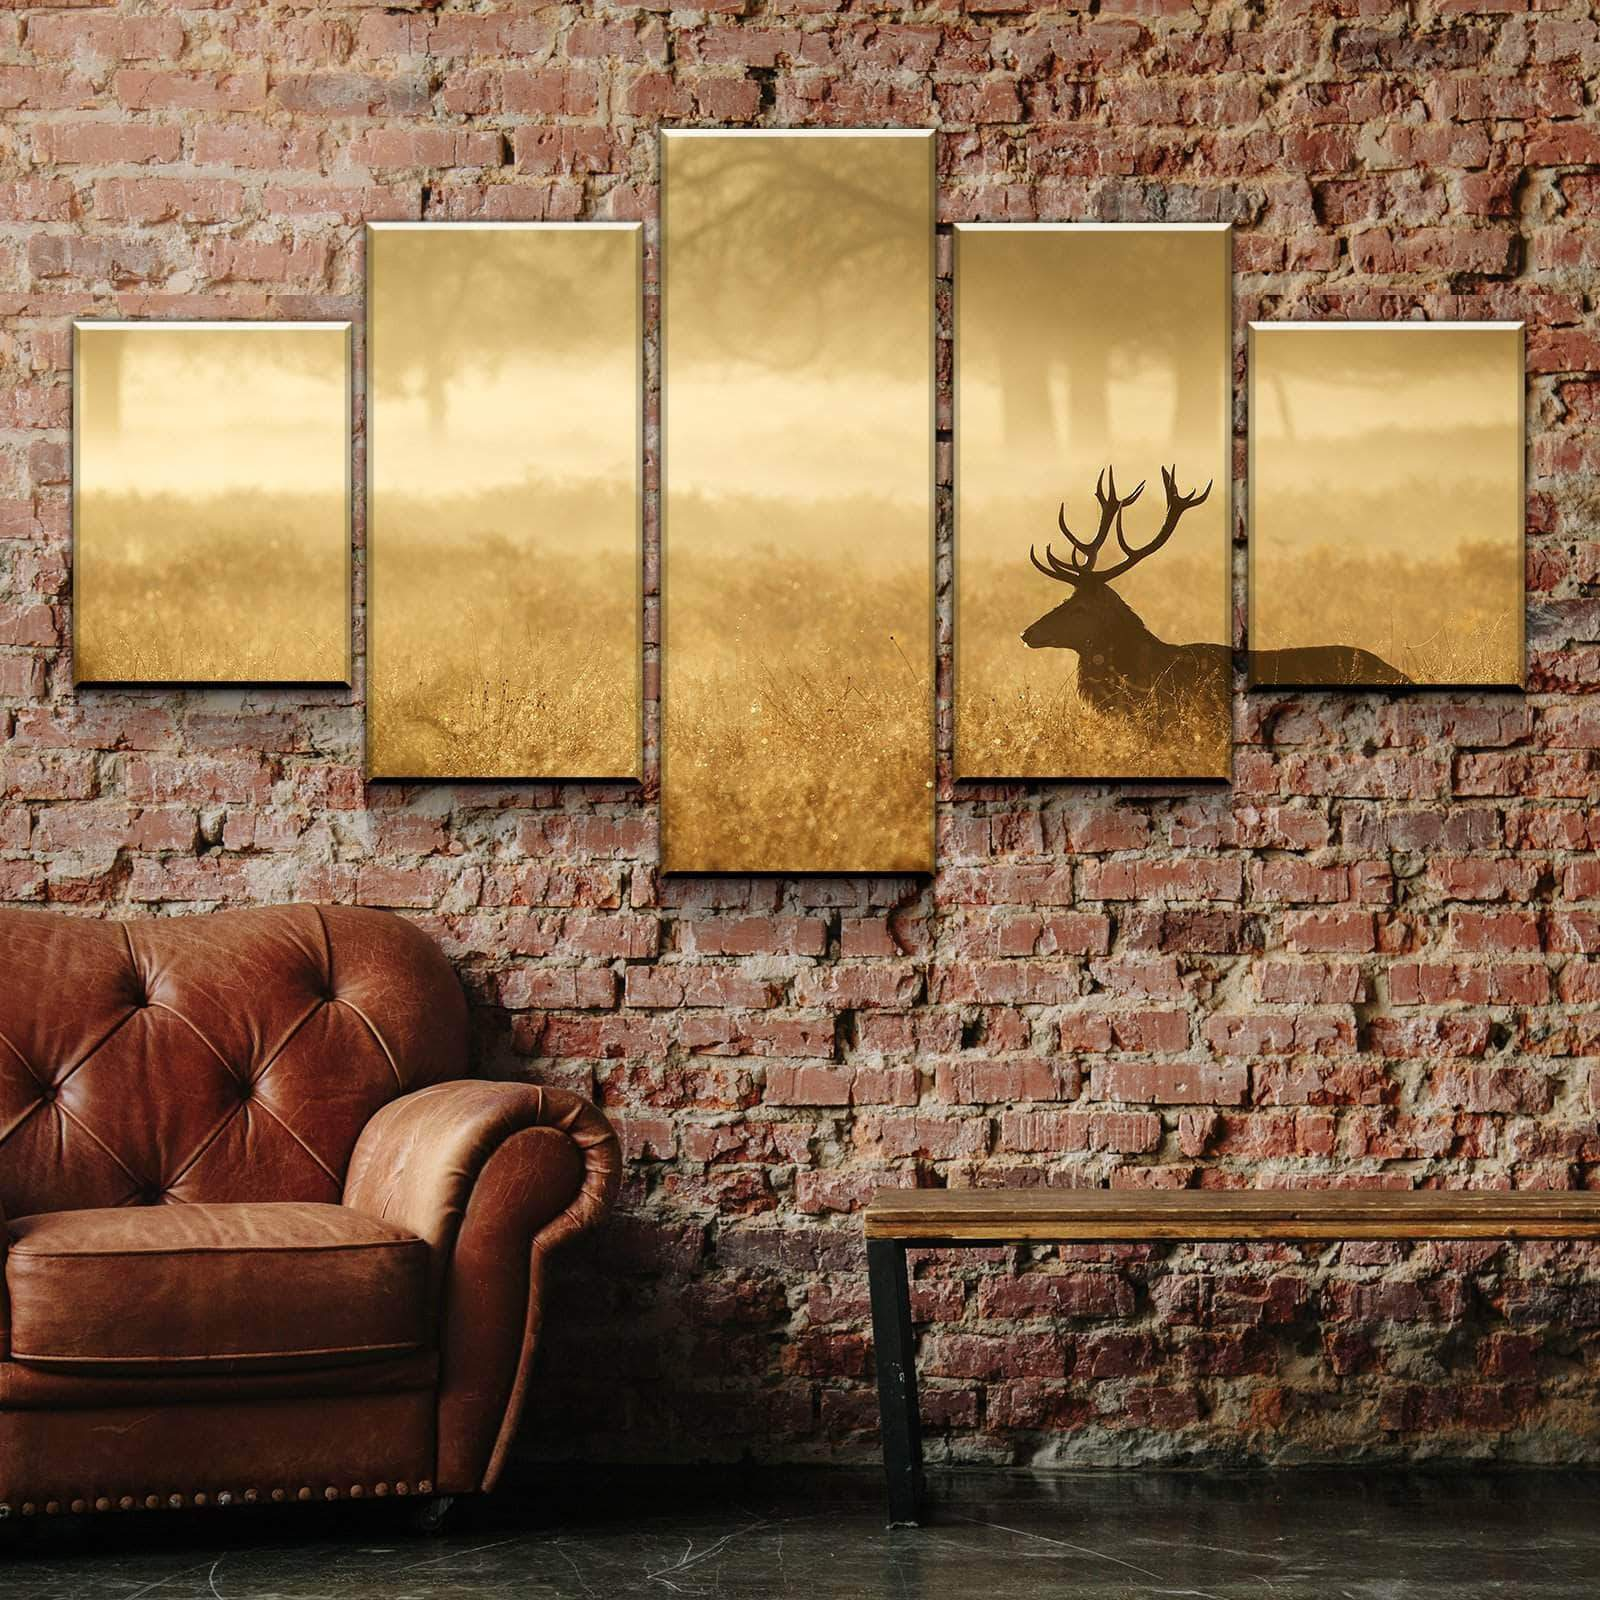 rot Deer Silhouette Forest 5 panel canvas Wall Art Home Decor Poster Print